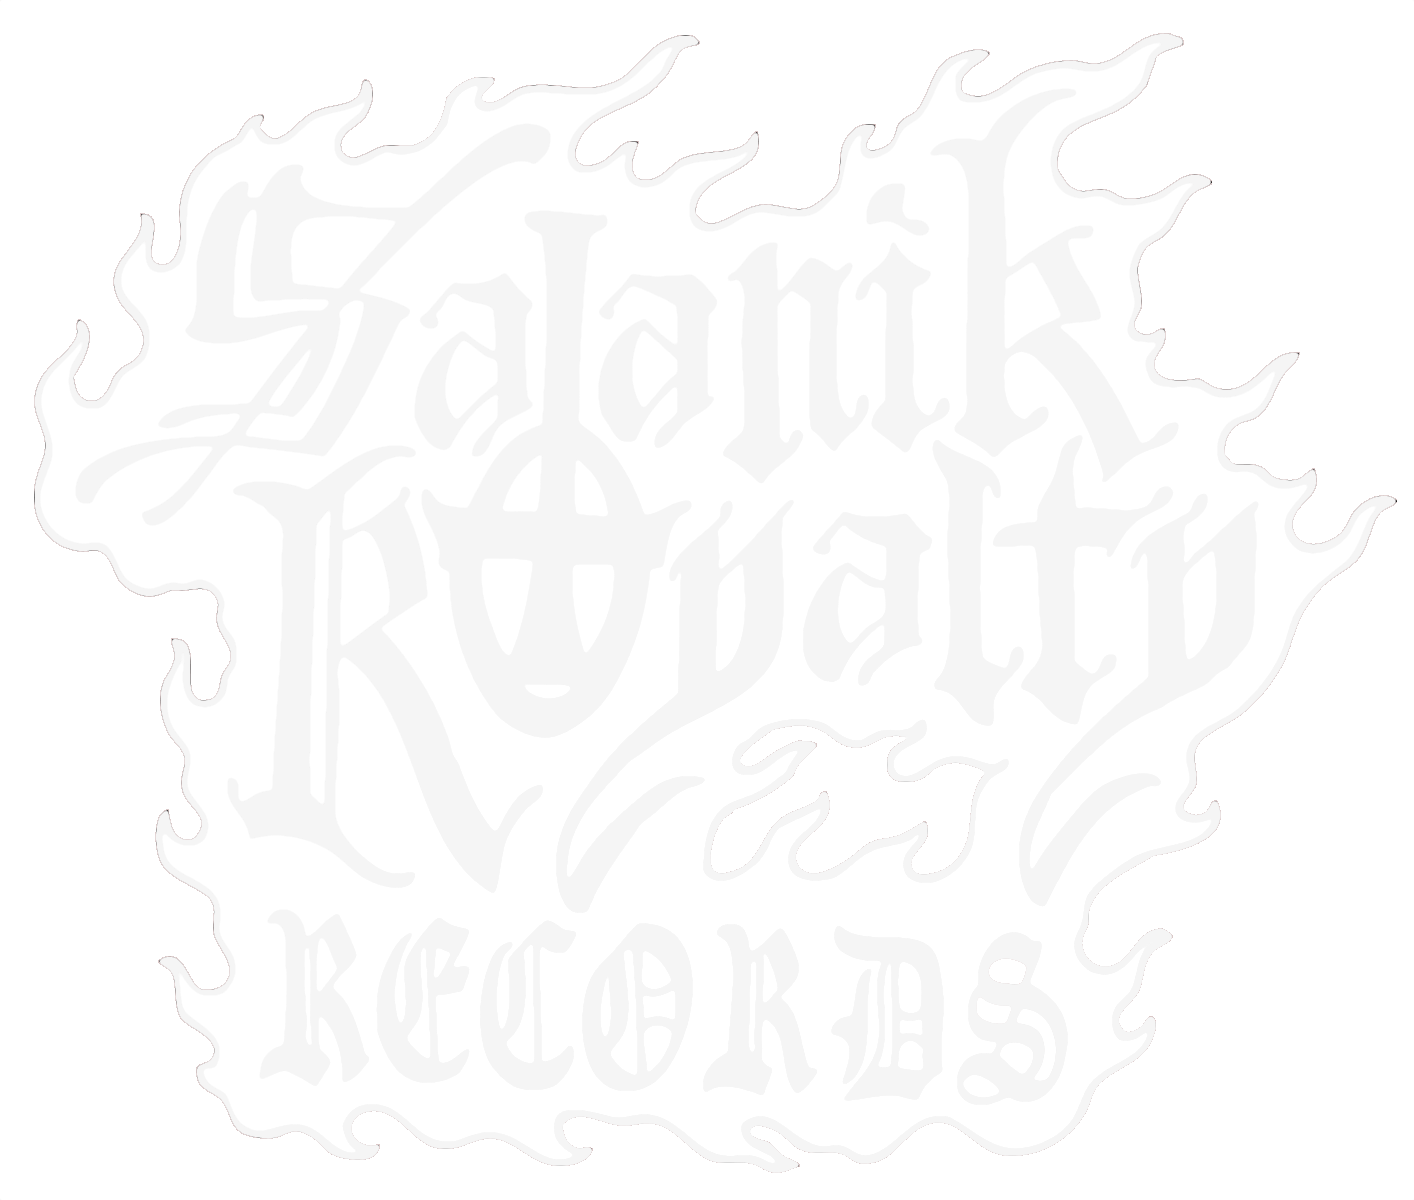 Satanik Royalty Records